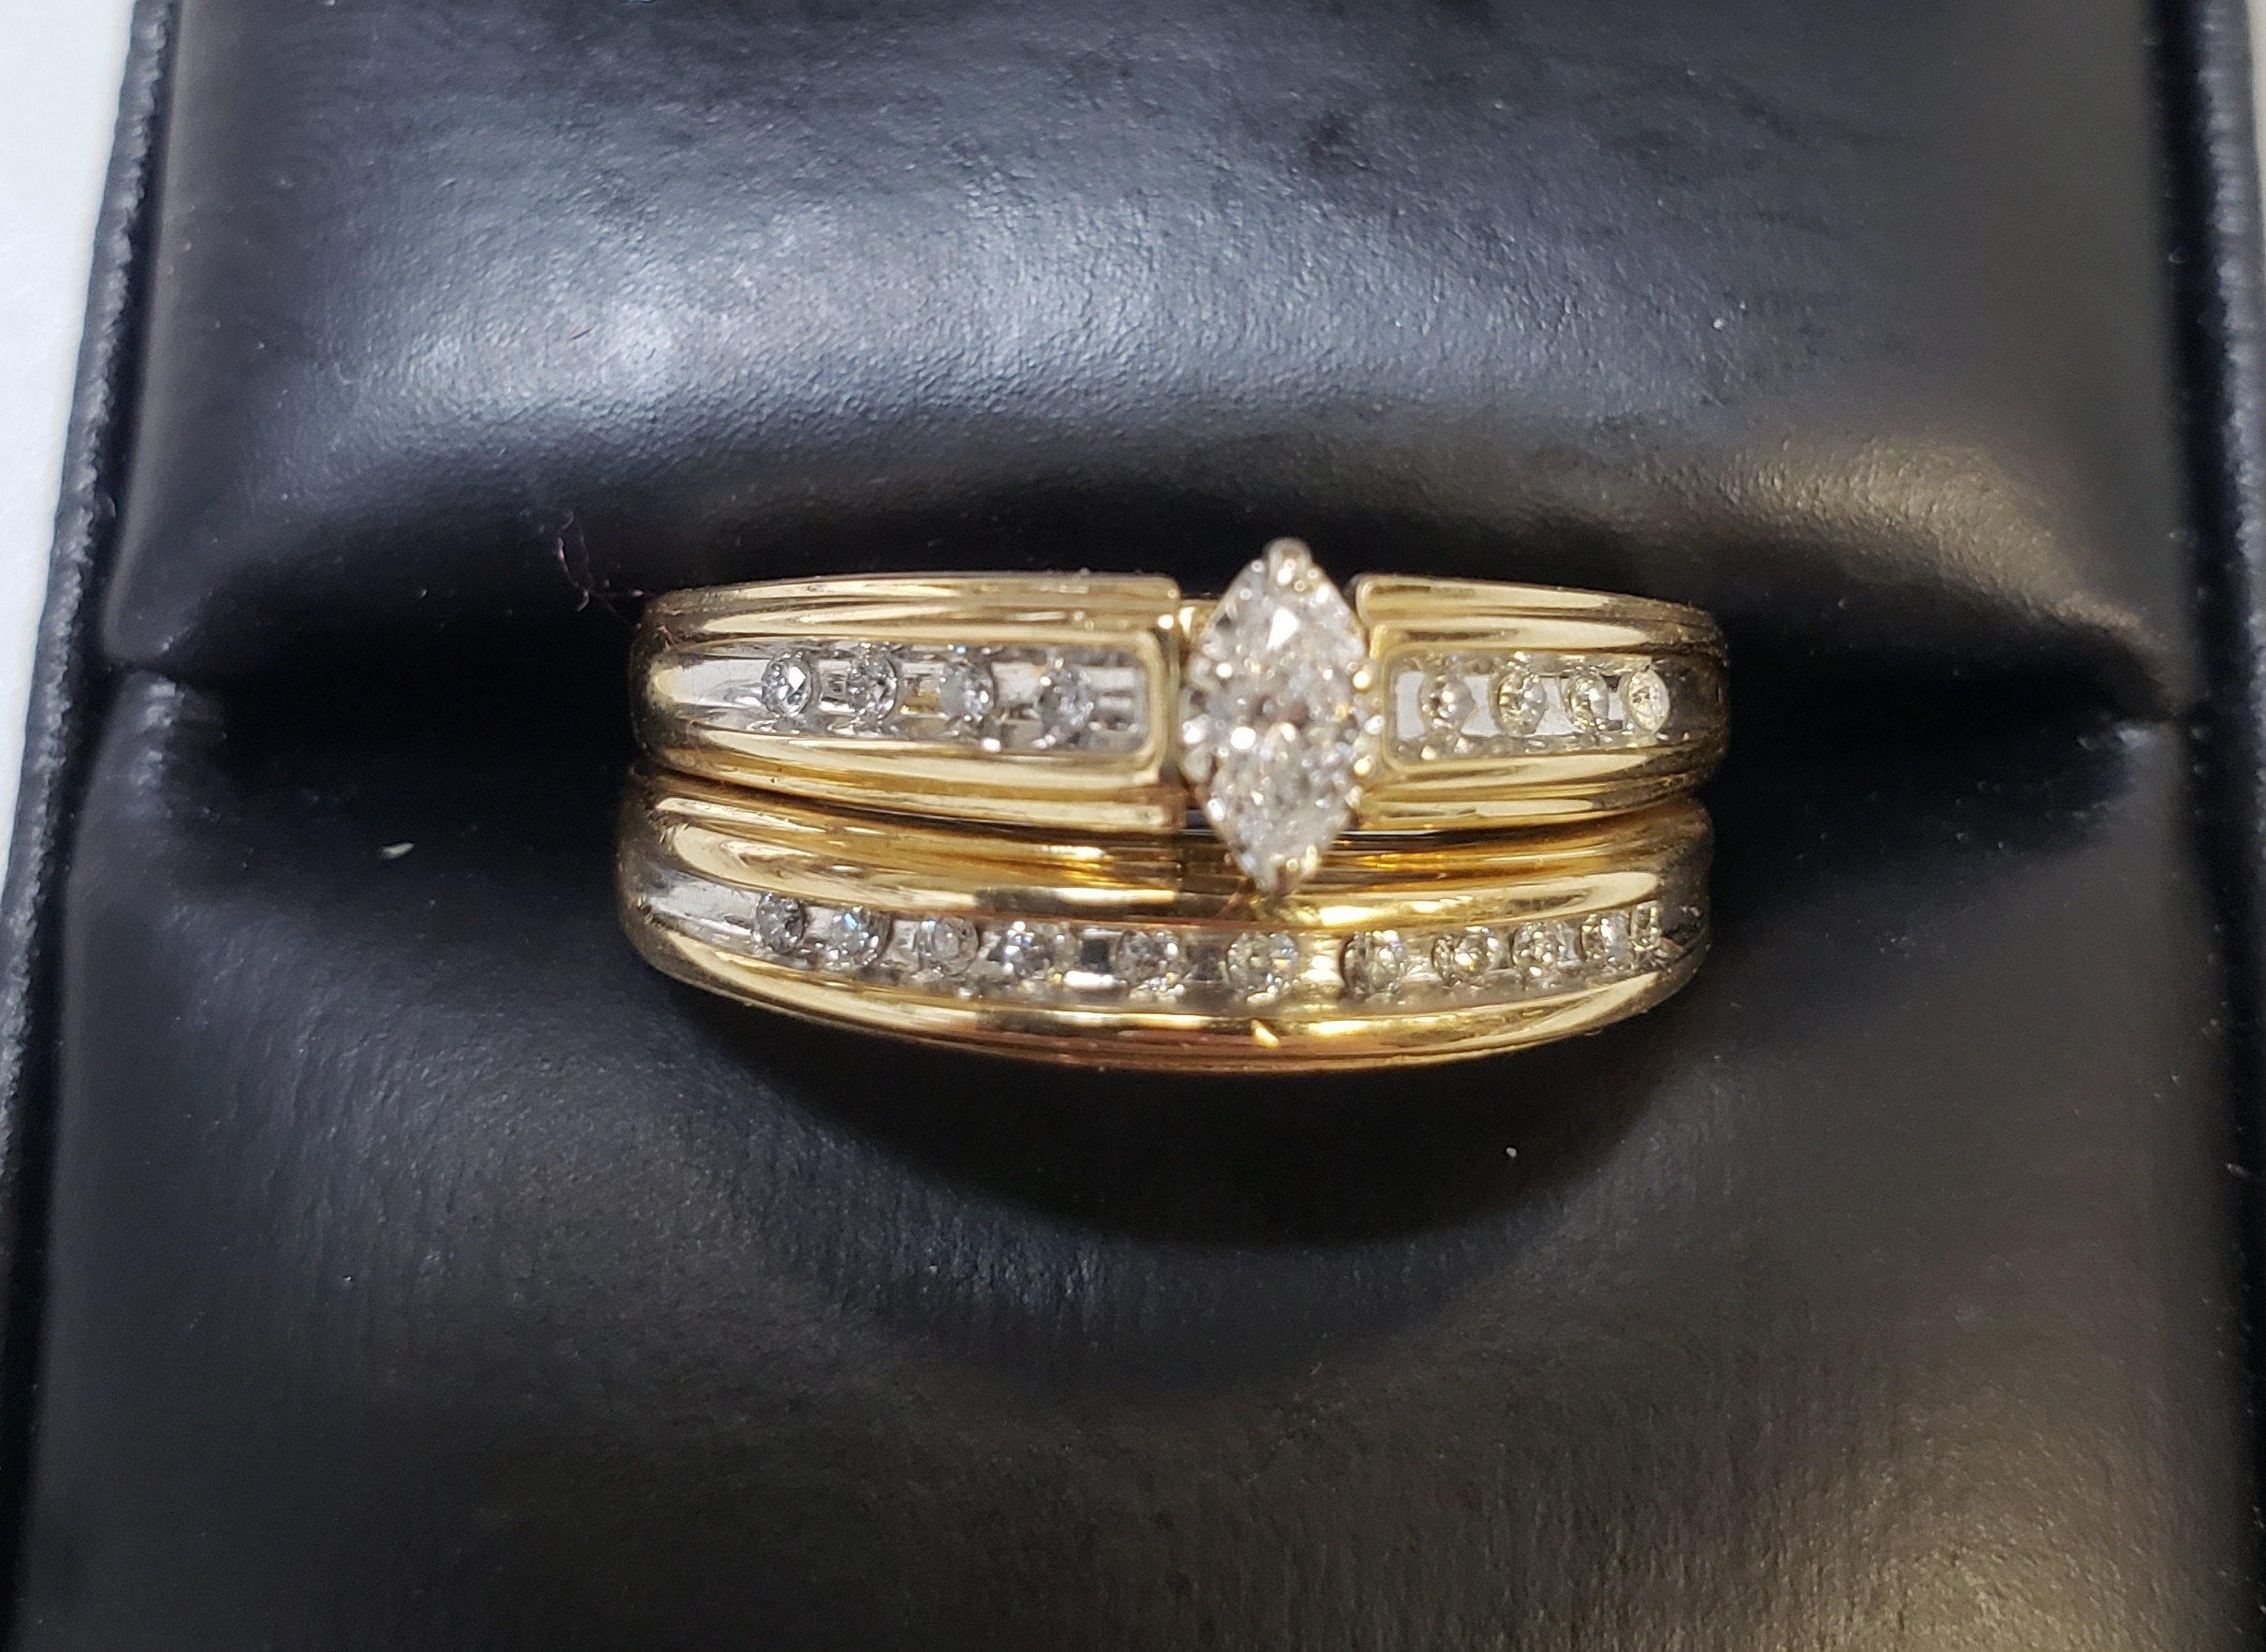 14KT - YELLOW GOLD W/ WHITE GOLD ACCENT - SIZE 9 - APPROXIMATELY 1/4 CTW WEDDING SET